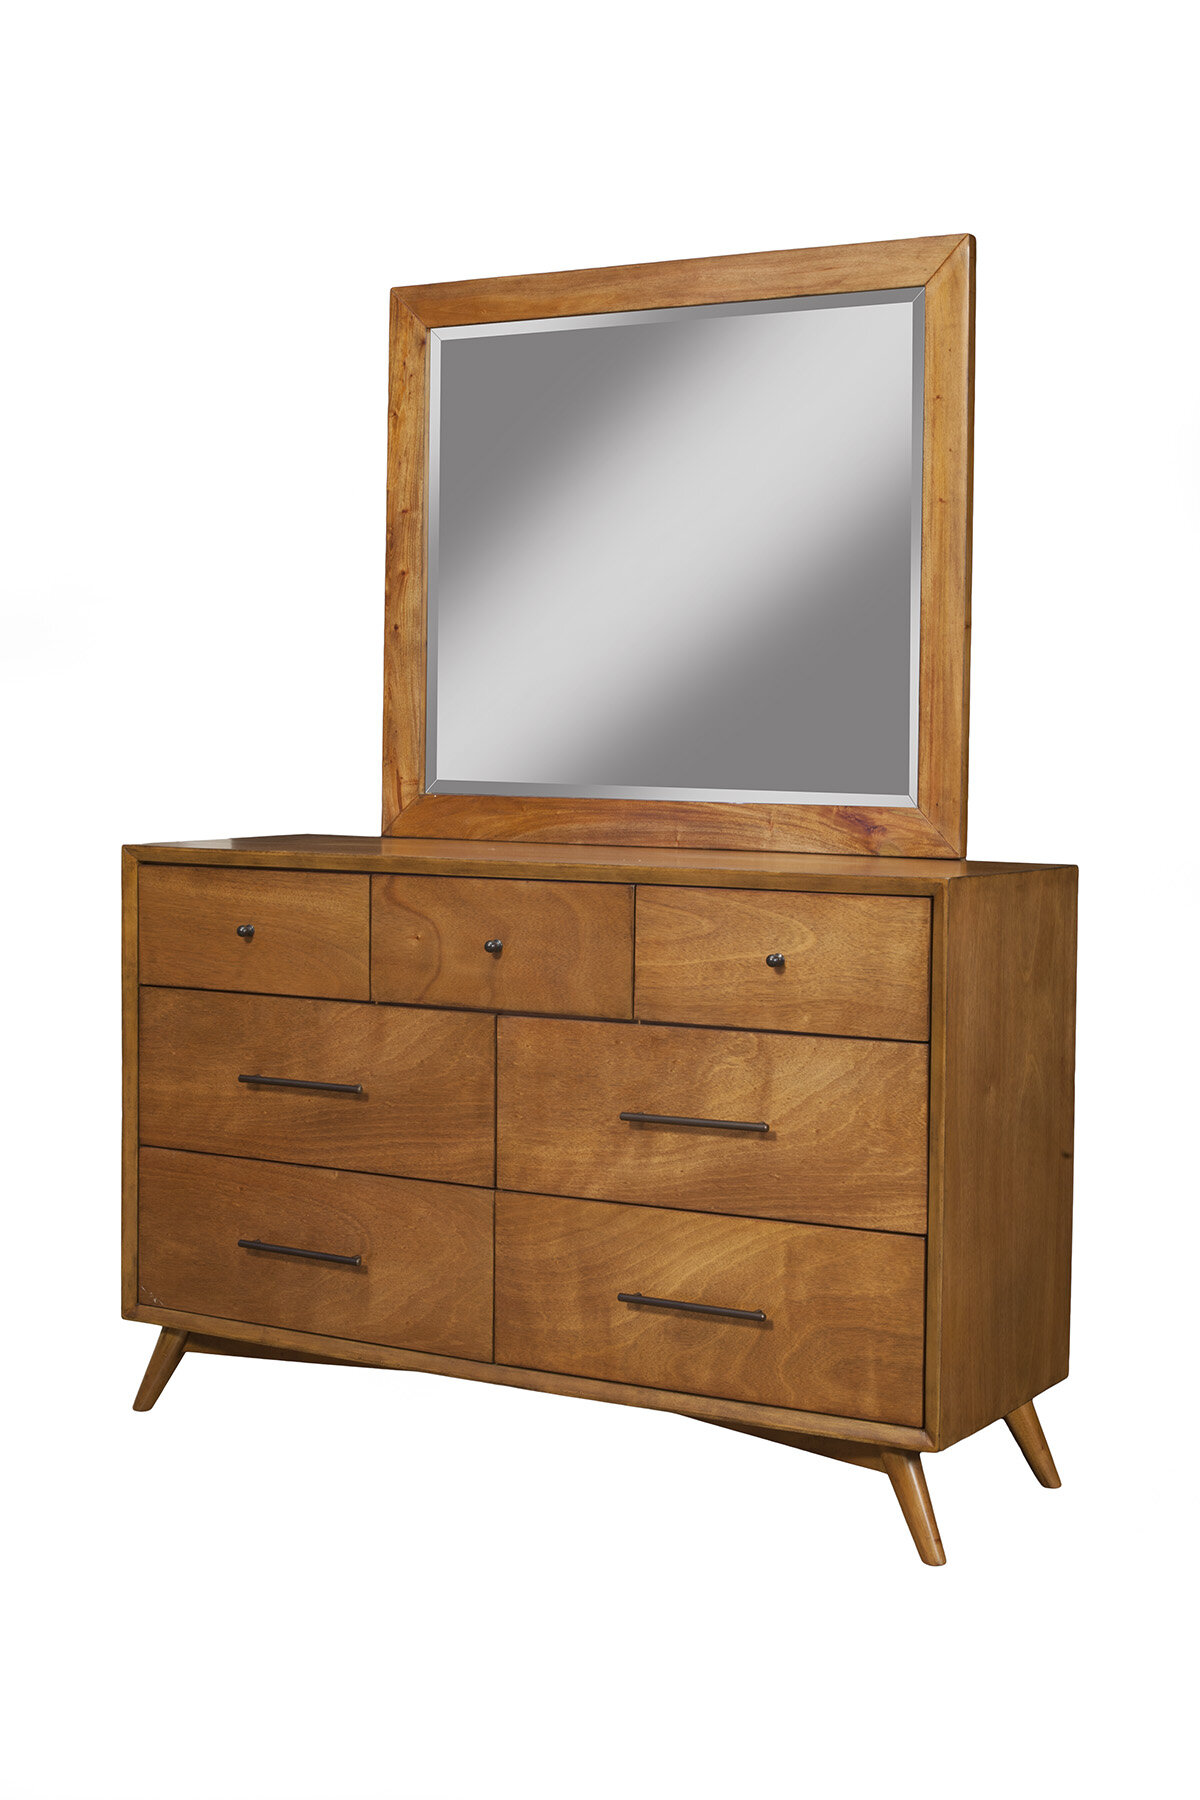 Modern Dovetail Joints Dressers Chests Allmodern